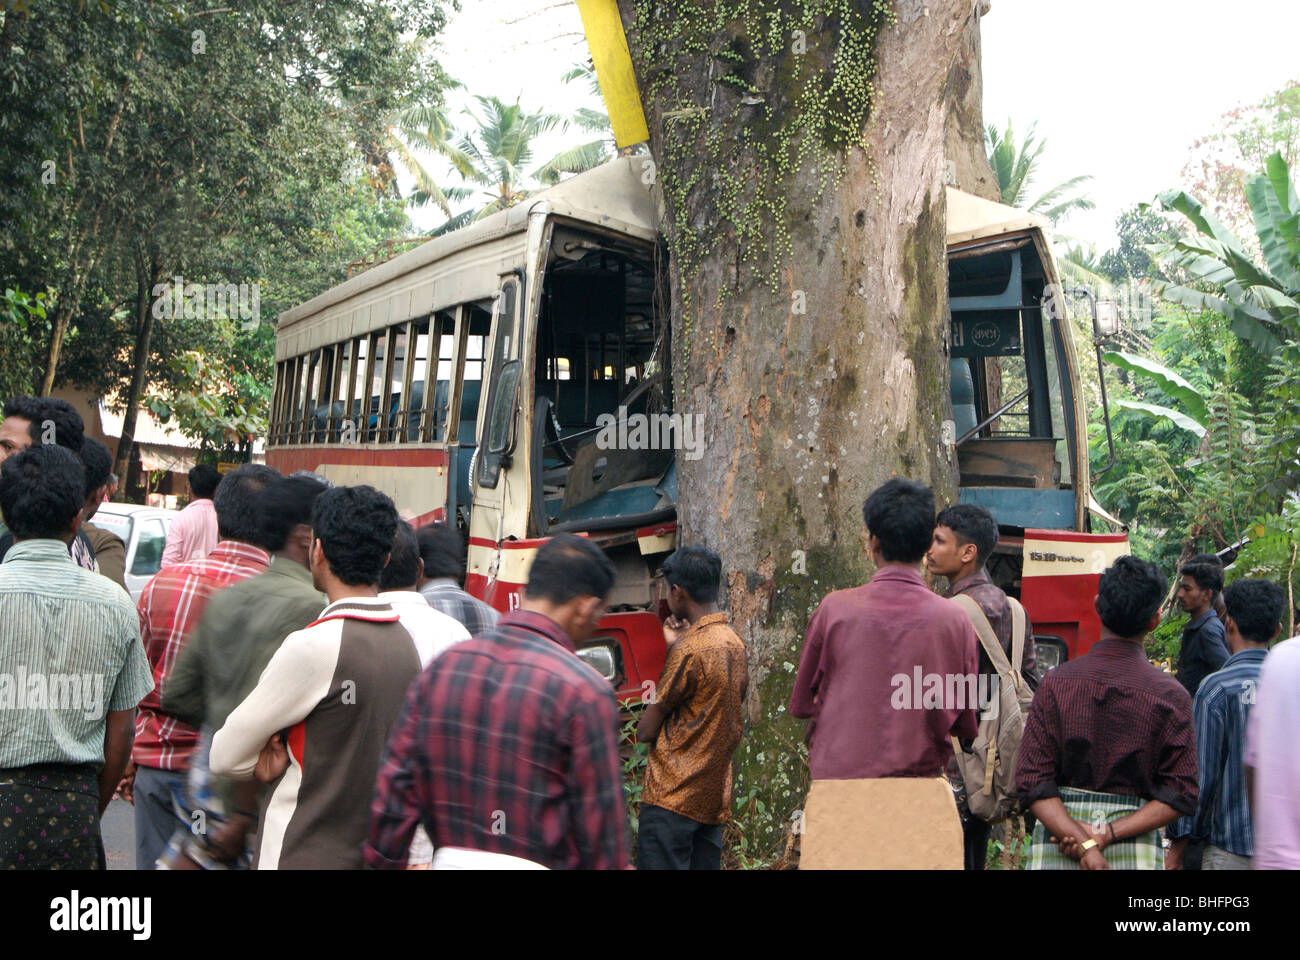 Bus Accident in Kerala.Bus hardly hit on the big tree.Large crowd assembled on the Spot. - Stock Image